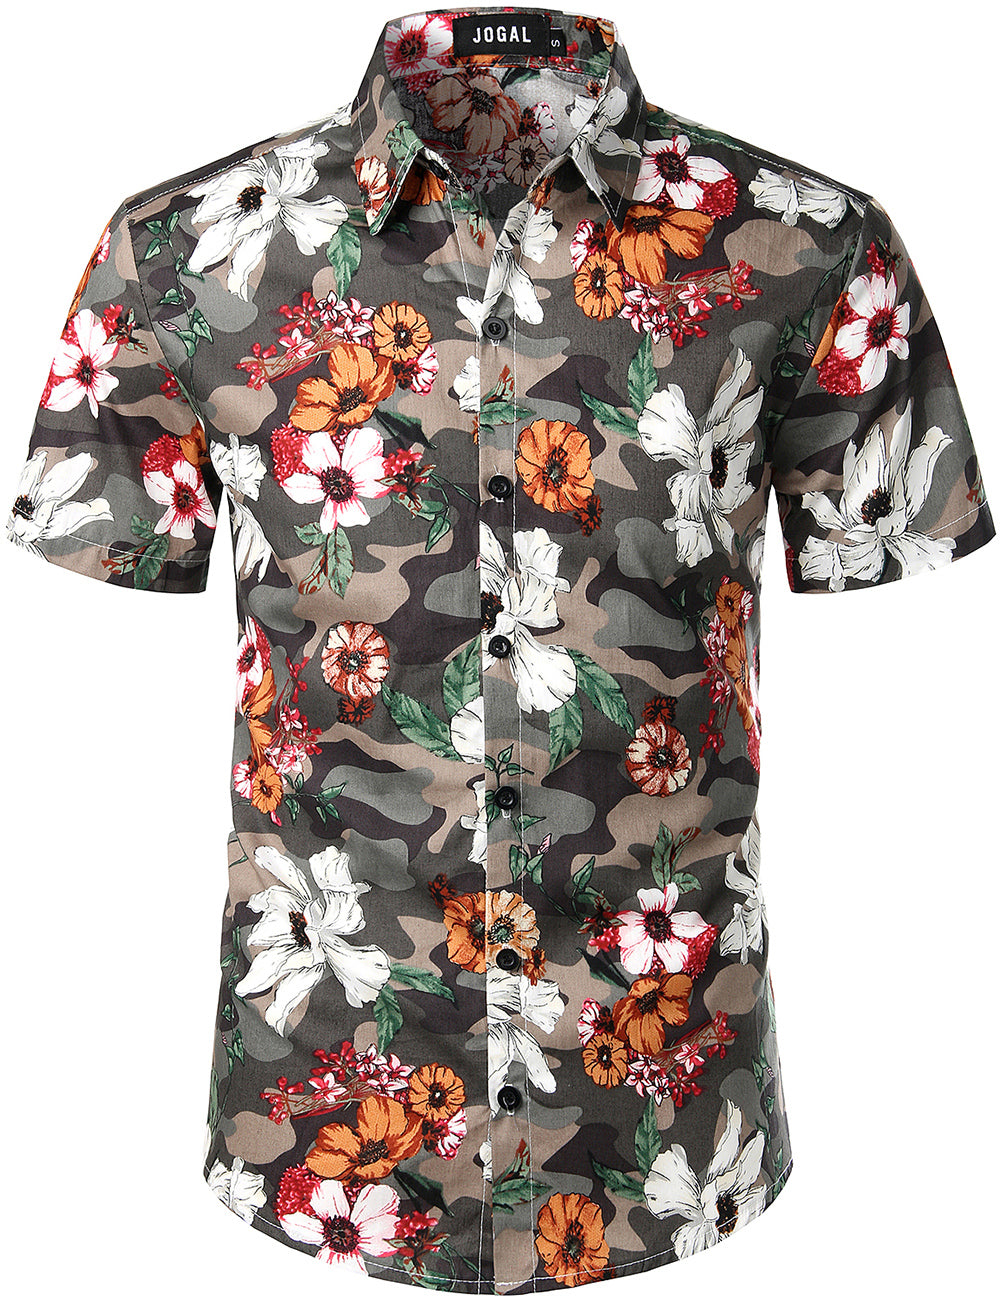 JOGAL Men's Flower Casual Button Down Short Sleeve Hawaiian Shirt(Camouflage Floral)